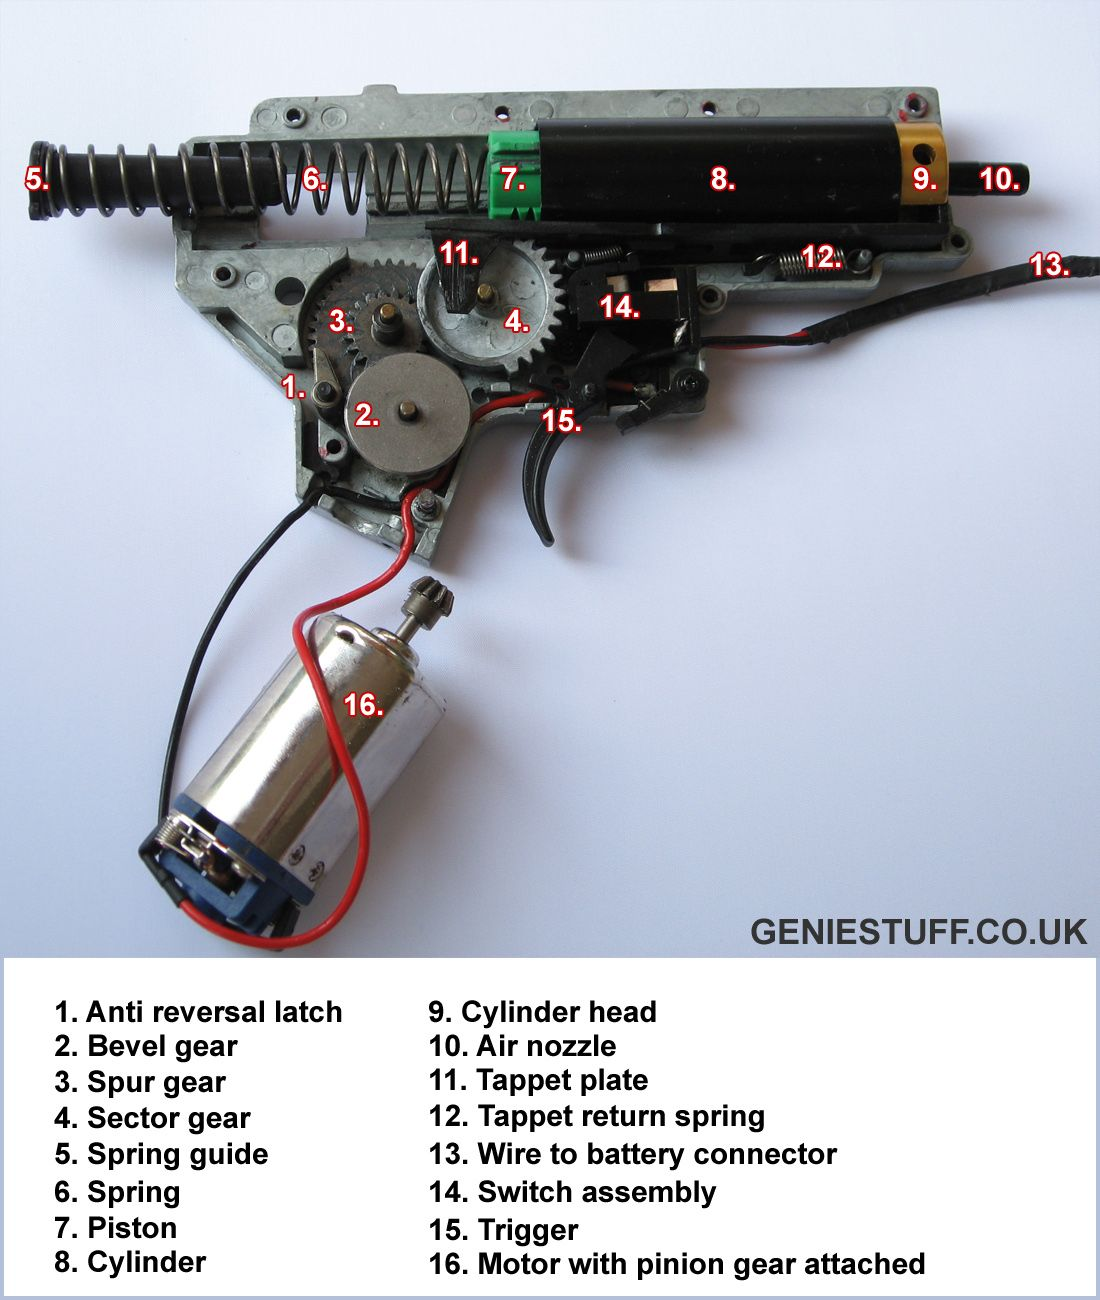 small resolution of airsoft m4 aeg internal gearbox layout diagram with component names labelled